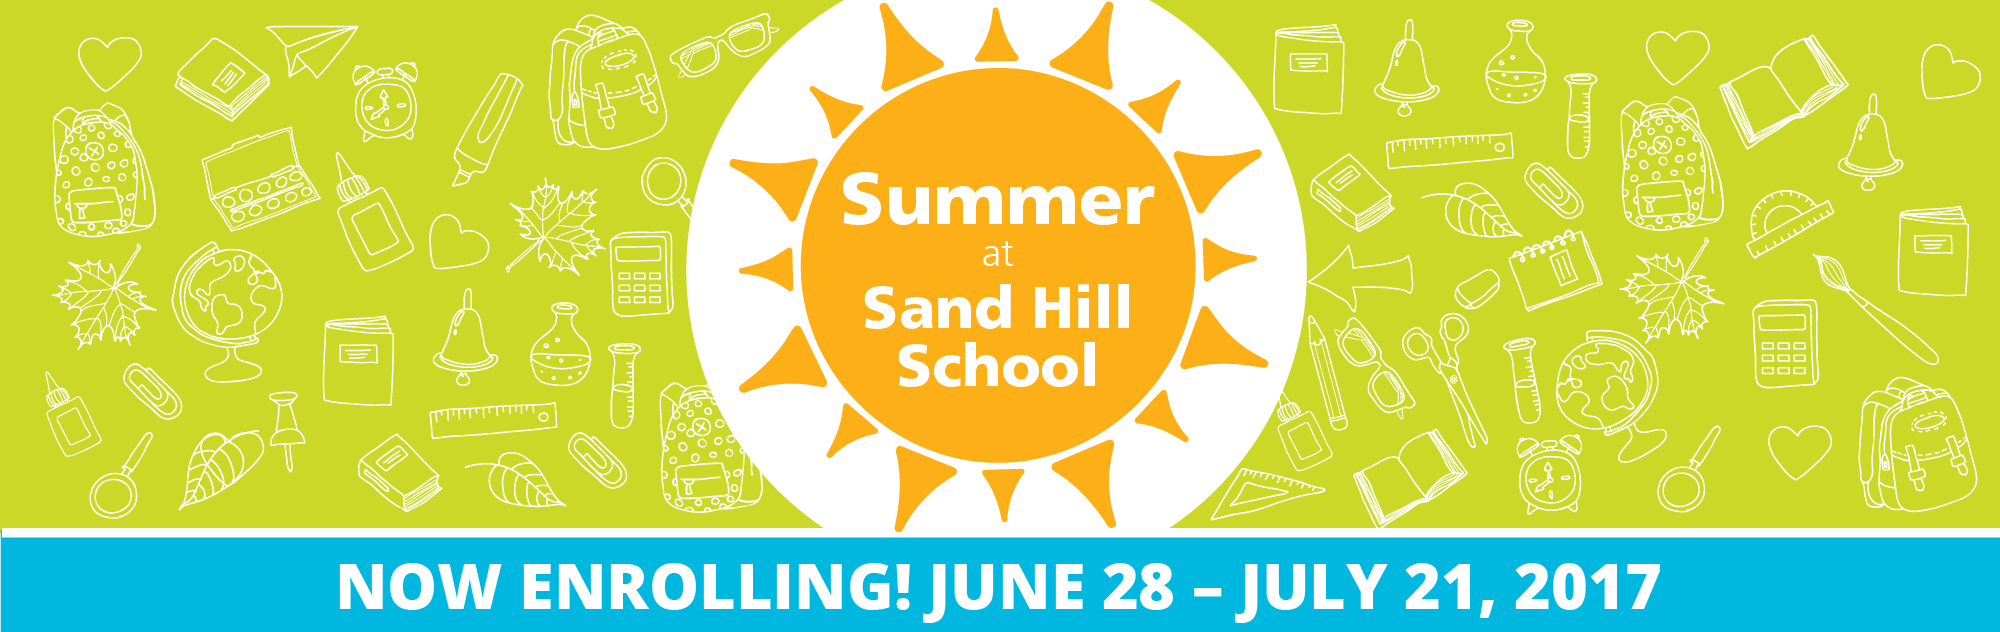 Summer at Sand Hill School — Now Enrolling! June 28 – July 21, 2017